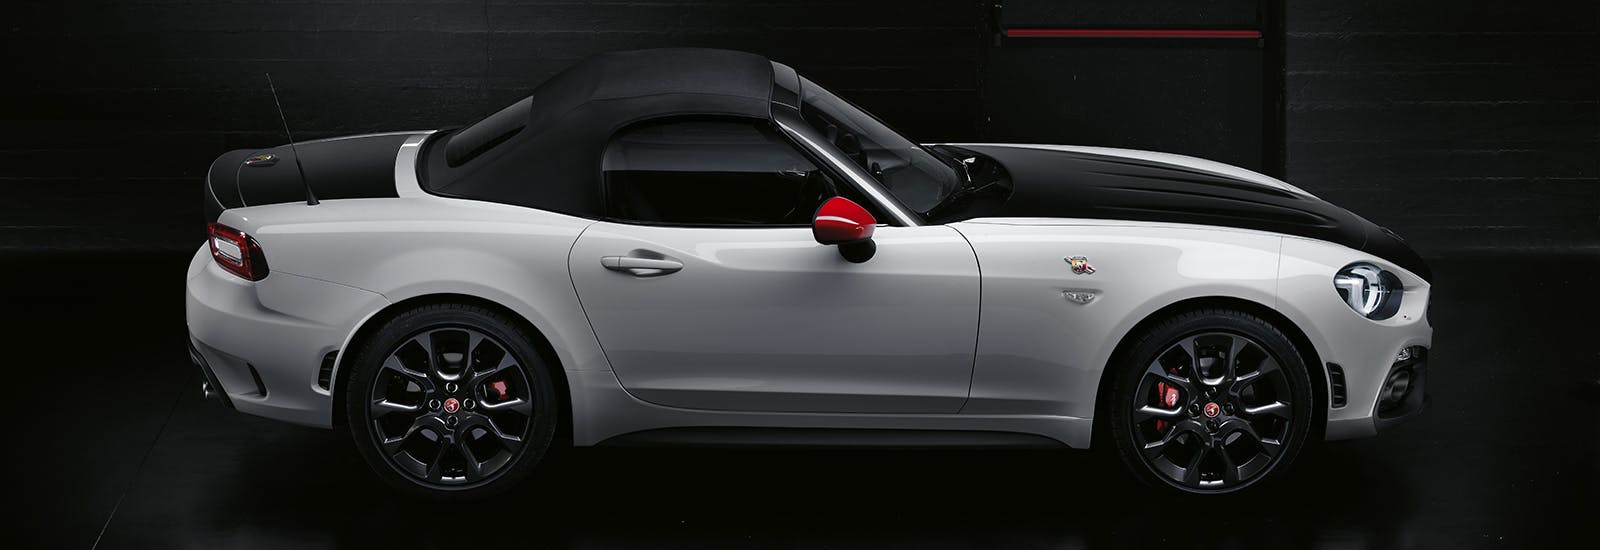 abarth 124 spider price specs and release date carwow. Black Bedroom Furniture Sets. Home Design Ideas